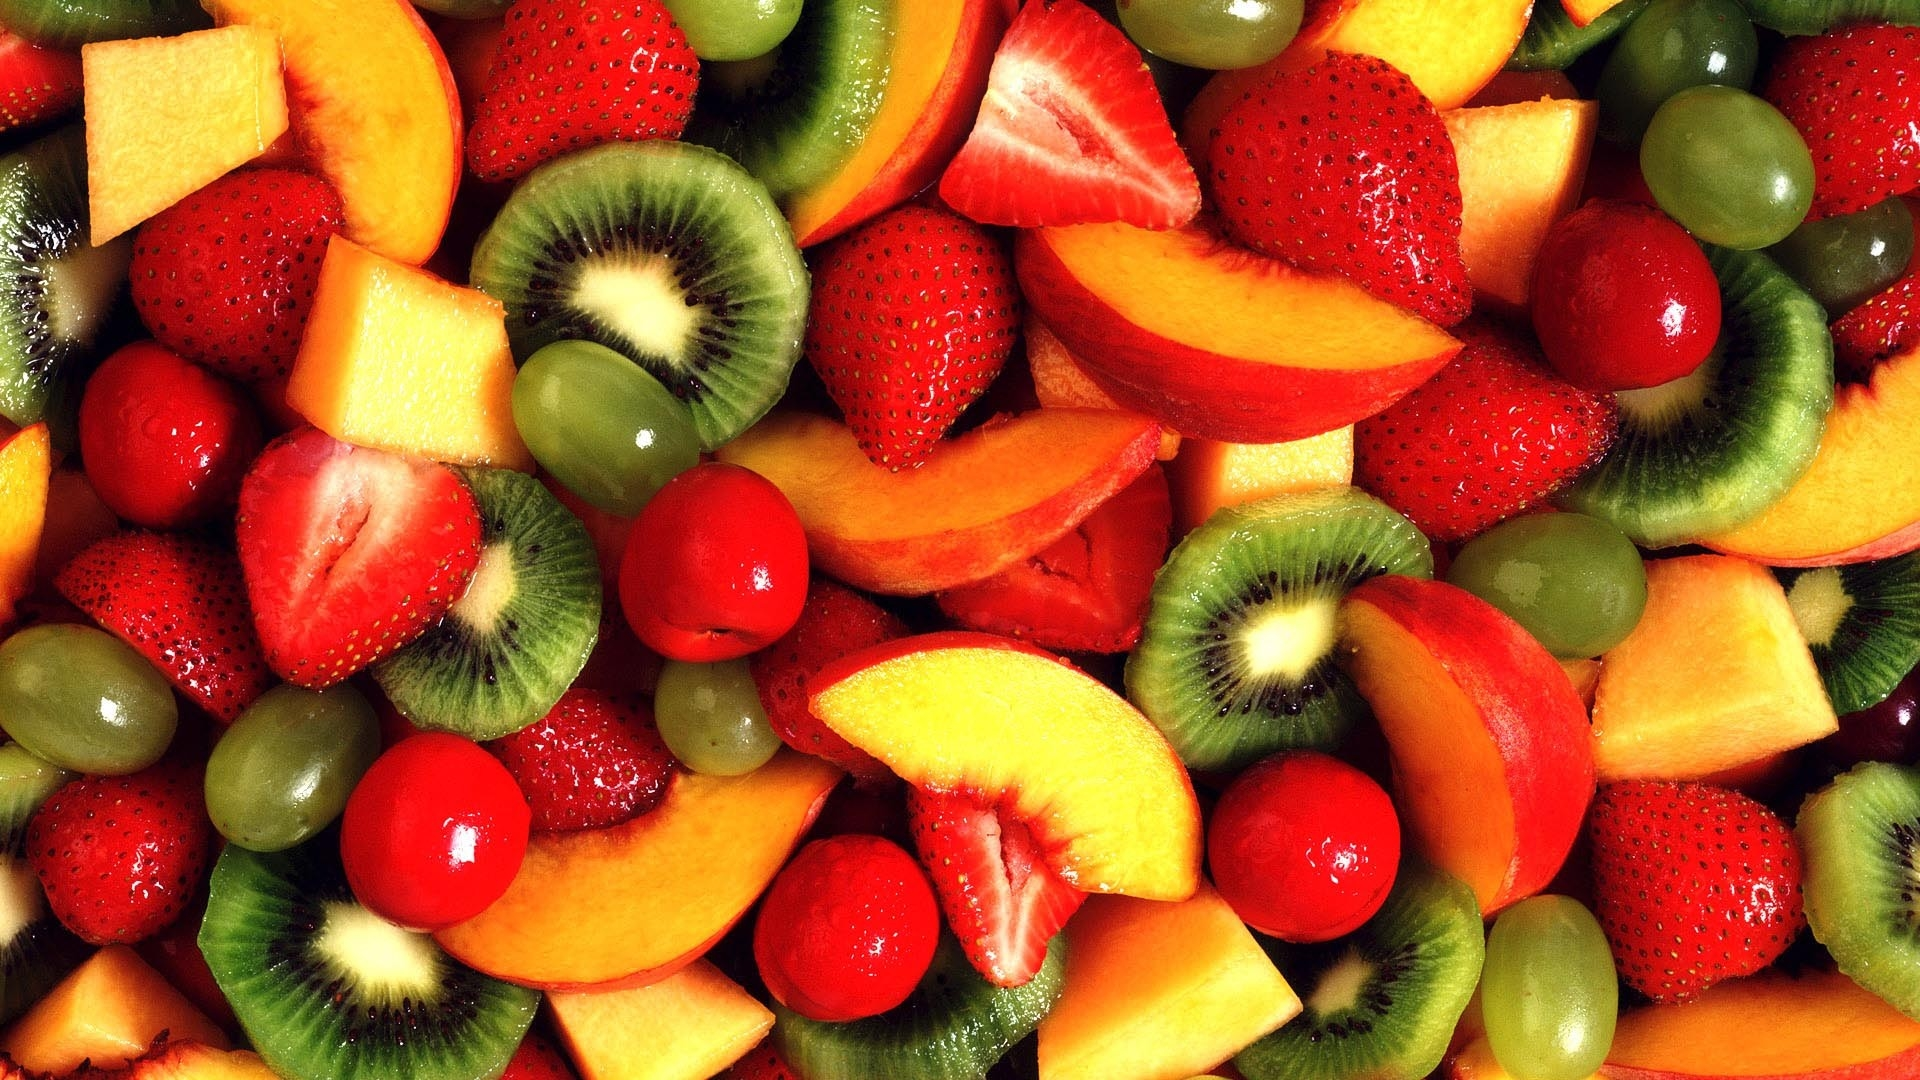 Fruits hd images - All Fruits Wallpaper